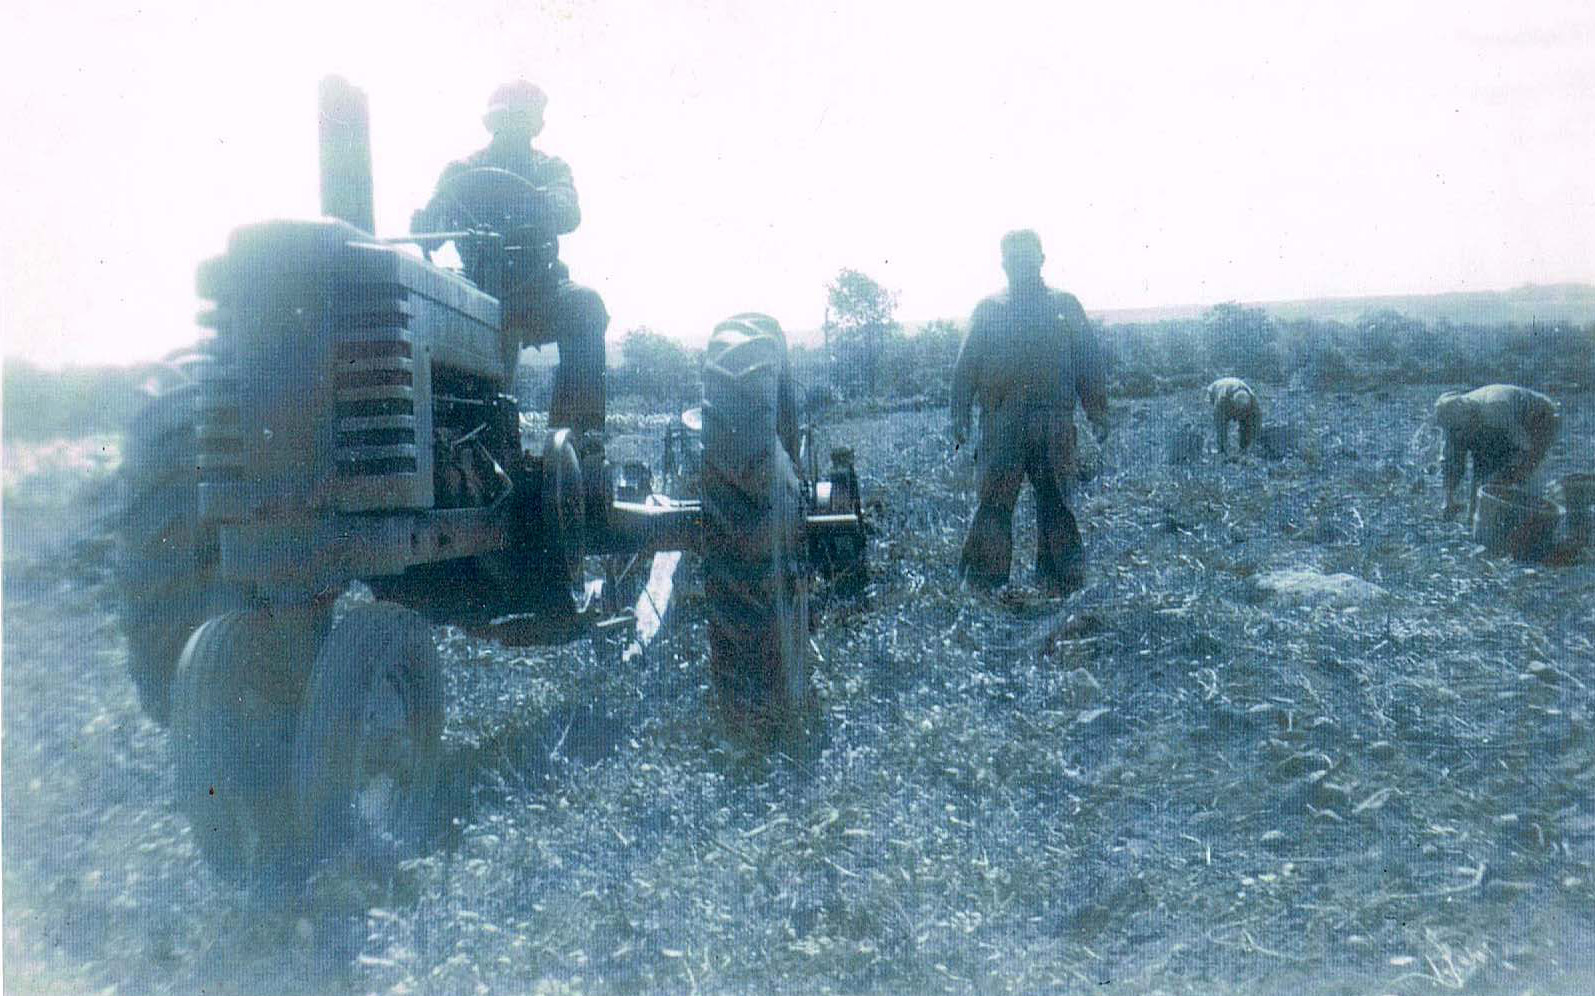 John Jr. (on tractor) and Tony (on right) in the fields circa 1940s.